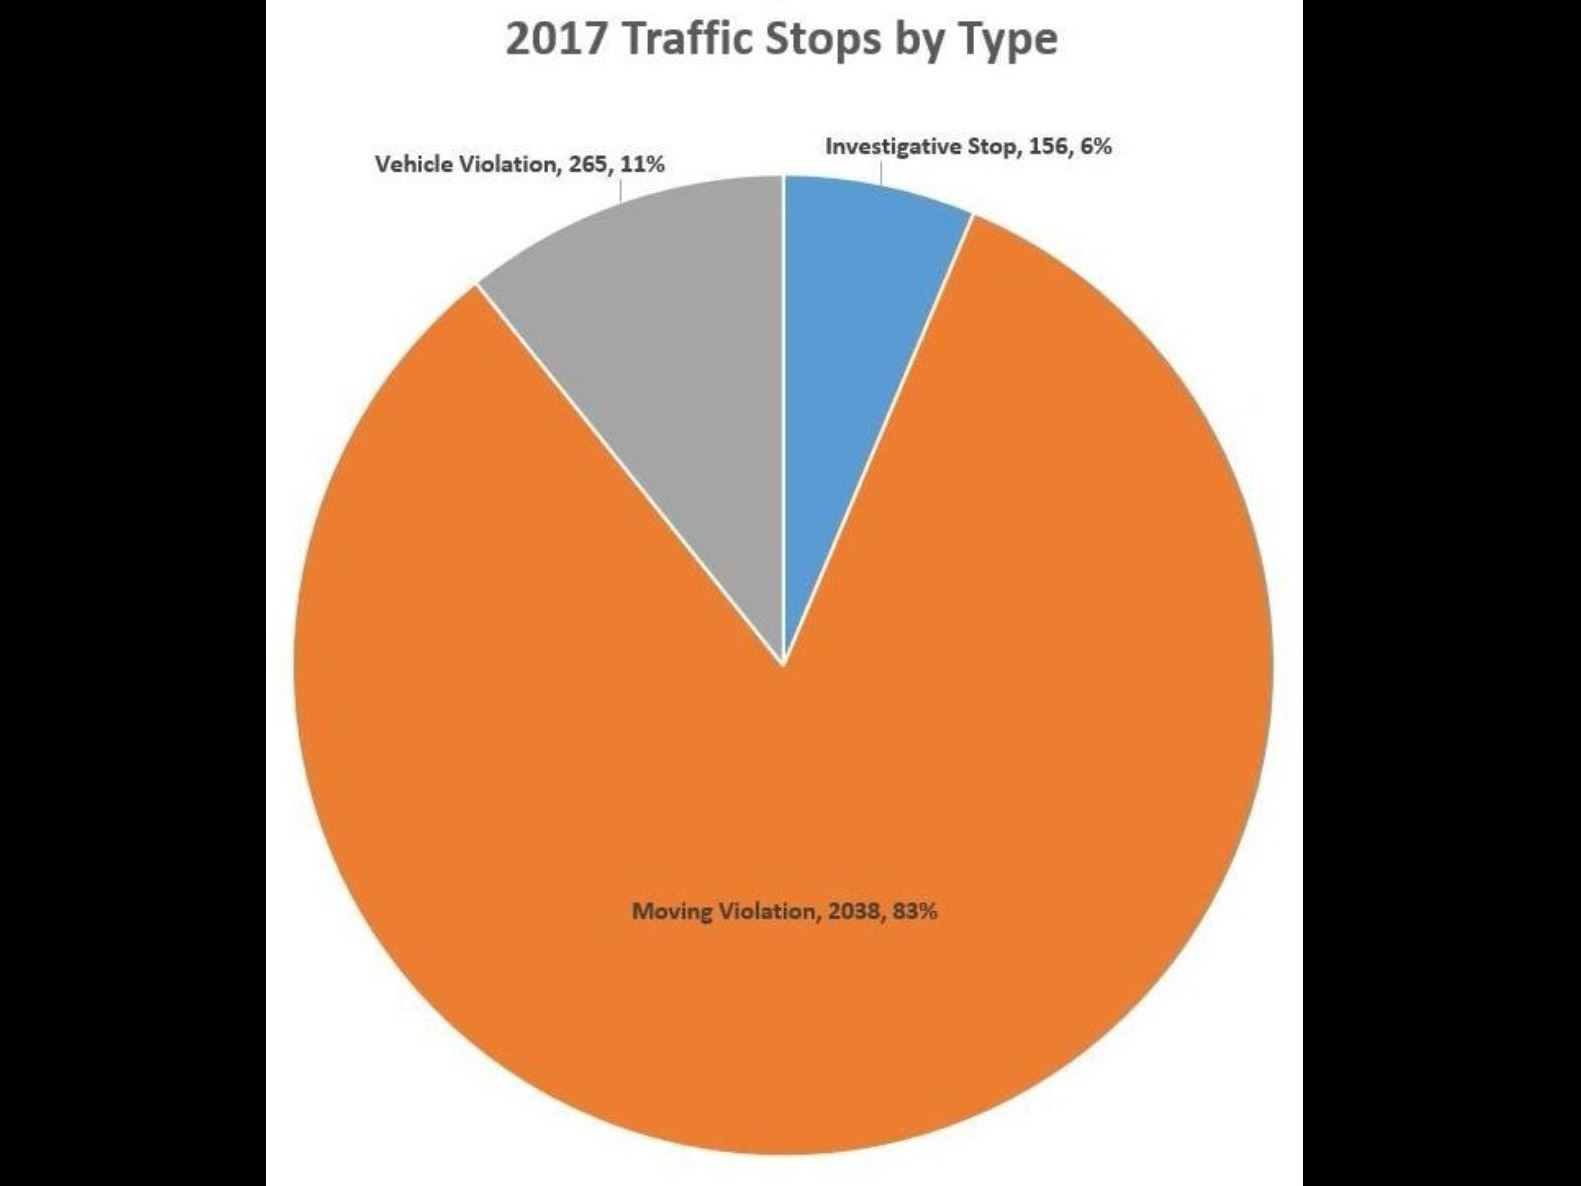 2017 Traffic Stops by Type